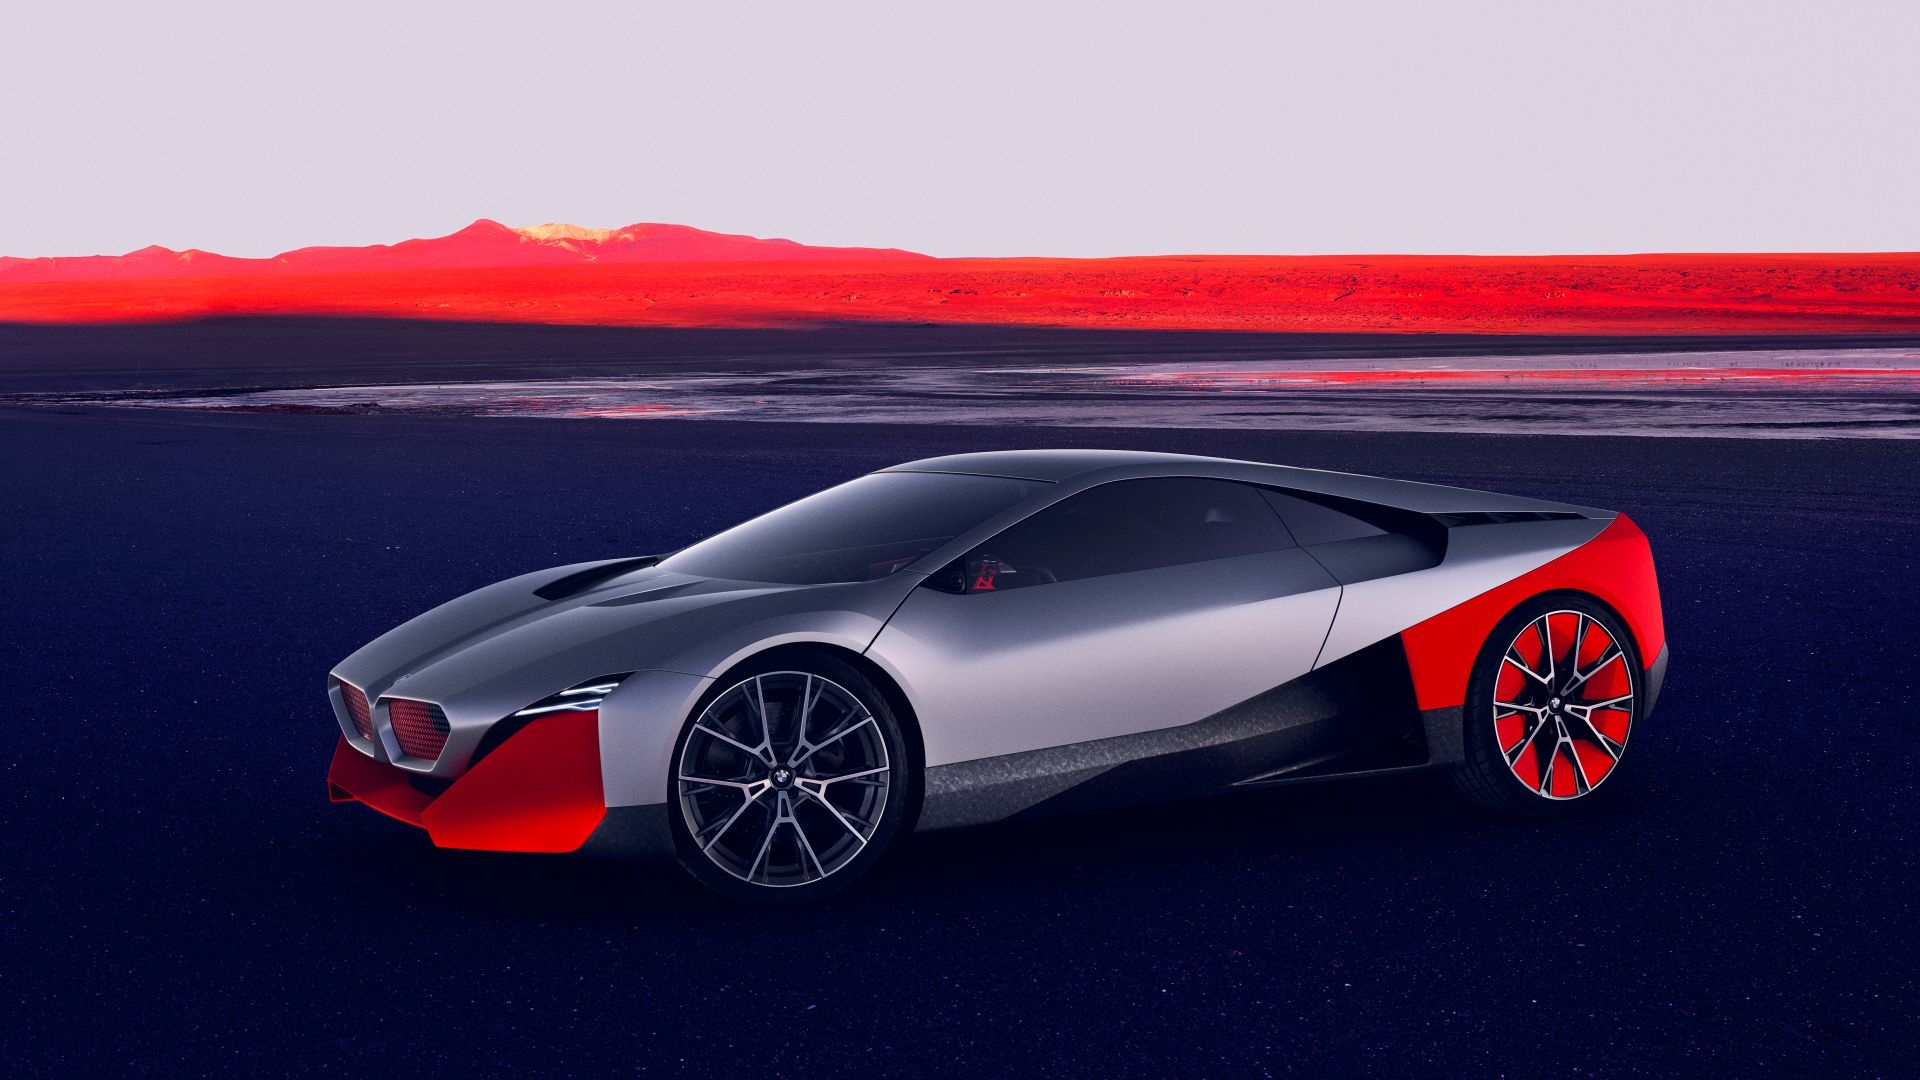 BMW Vision M NEXT, electric cars, 2019 cars, 4K, BMW Vision M NEXT, electric cars, 2019 cars, 4K (horizontal)